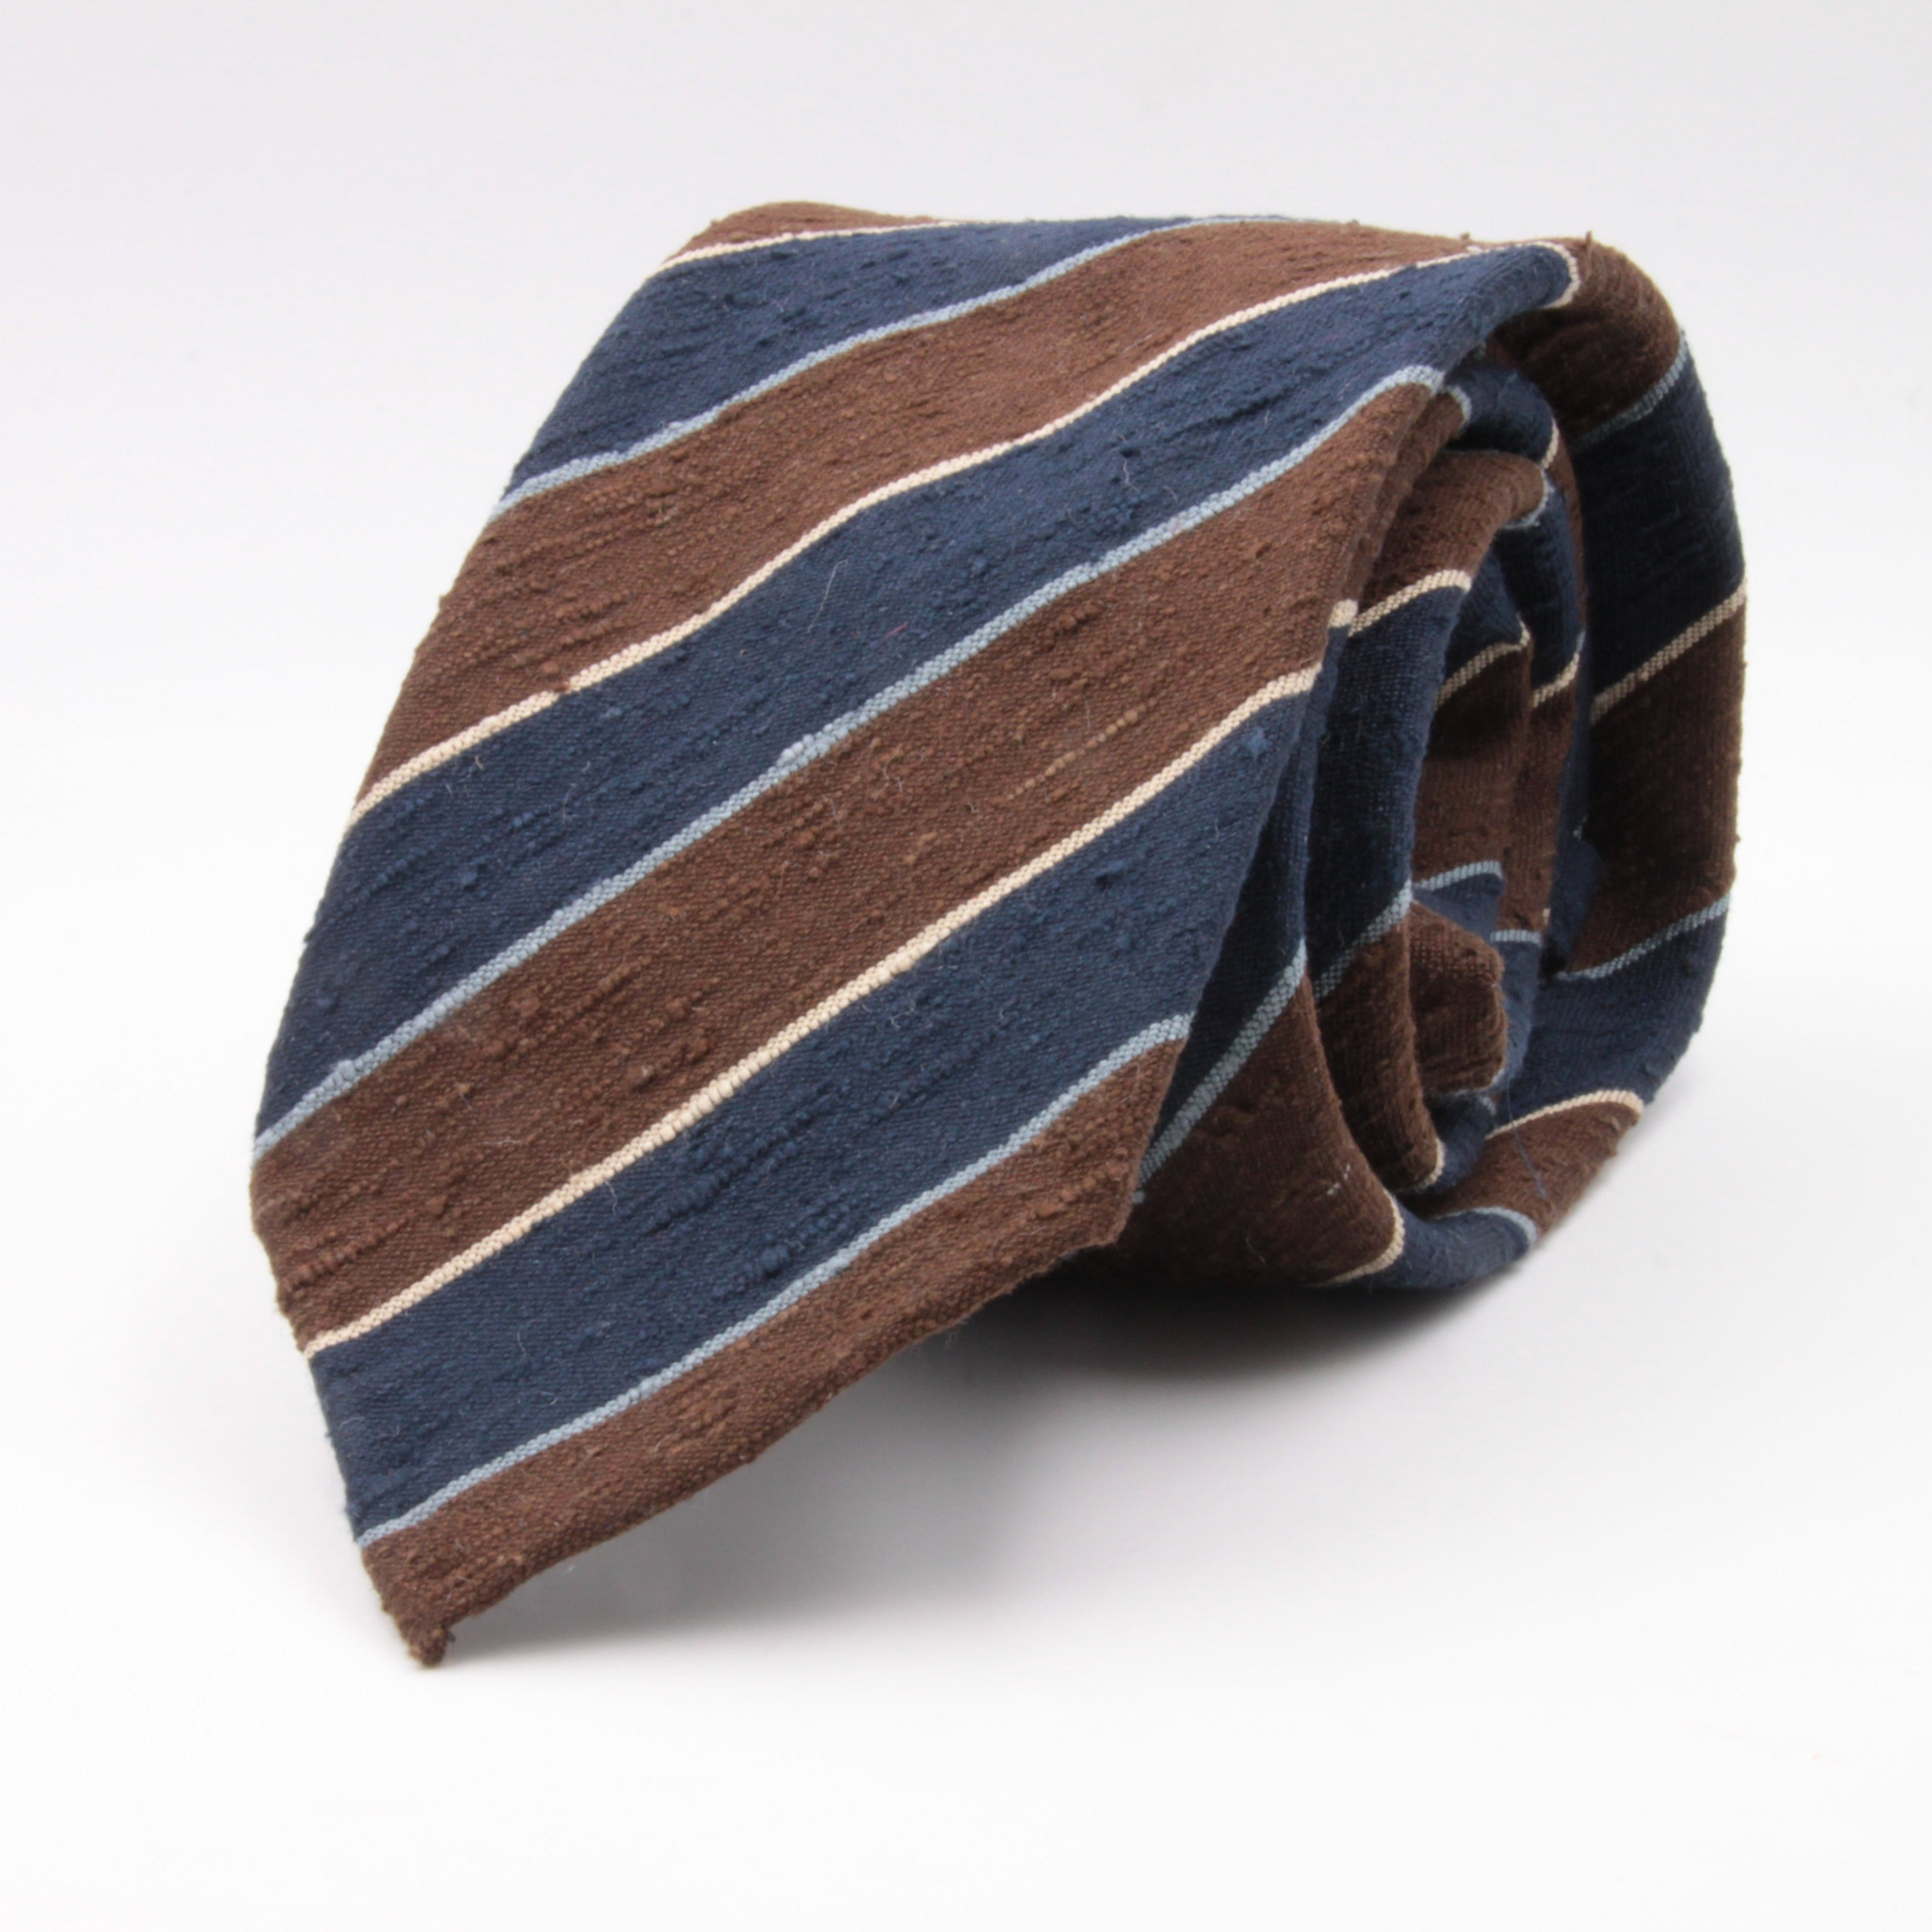 Cruciani & Bella 100% Silk Shantung Unlined Hand rolled blades Blue, Brown, Blue Sky and Yellow stripe tie Handmade in Italy 8 cm x 150 cm